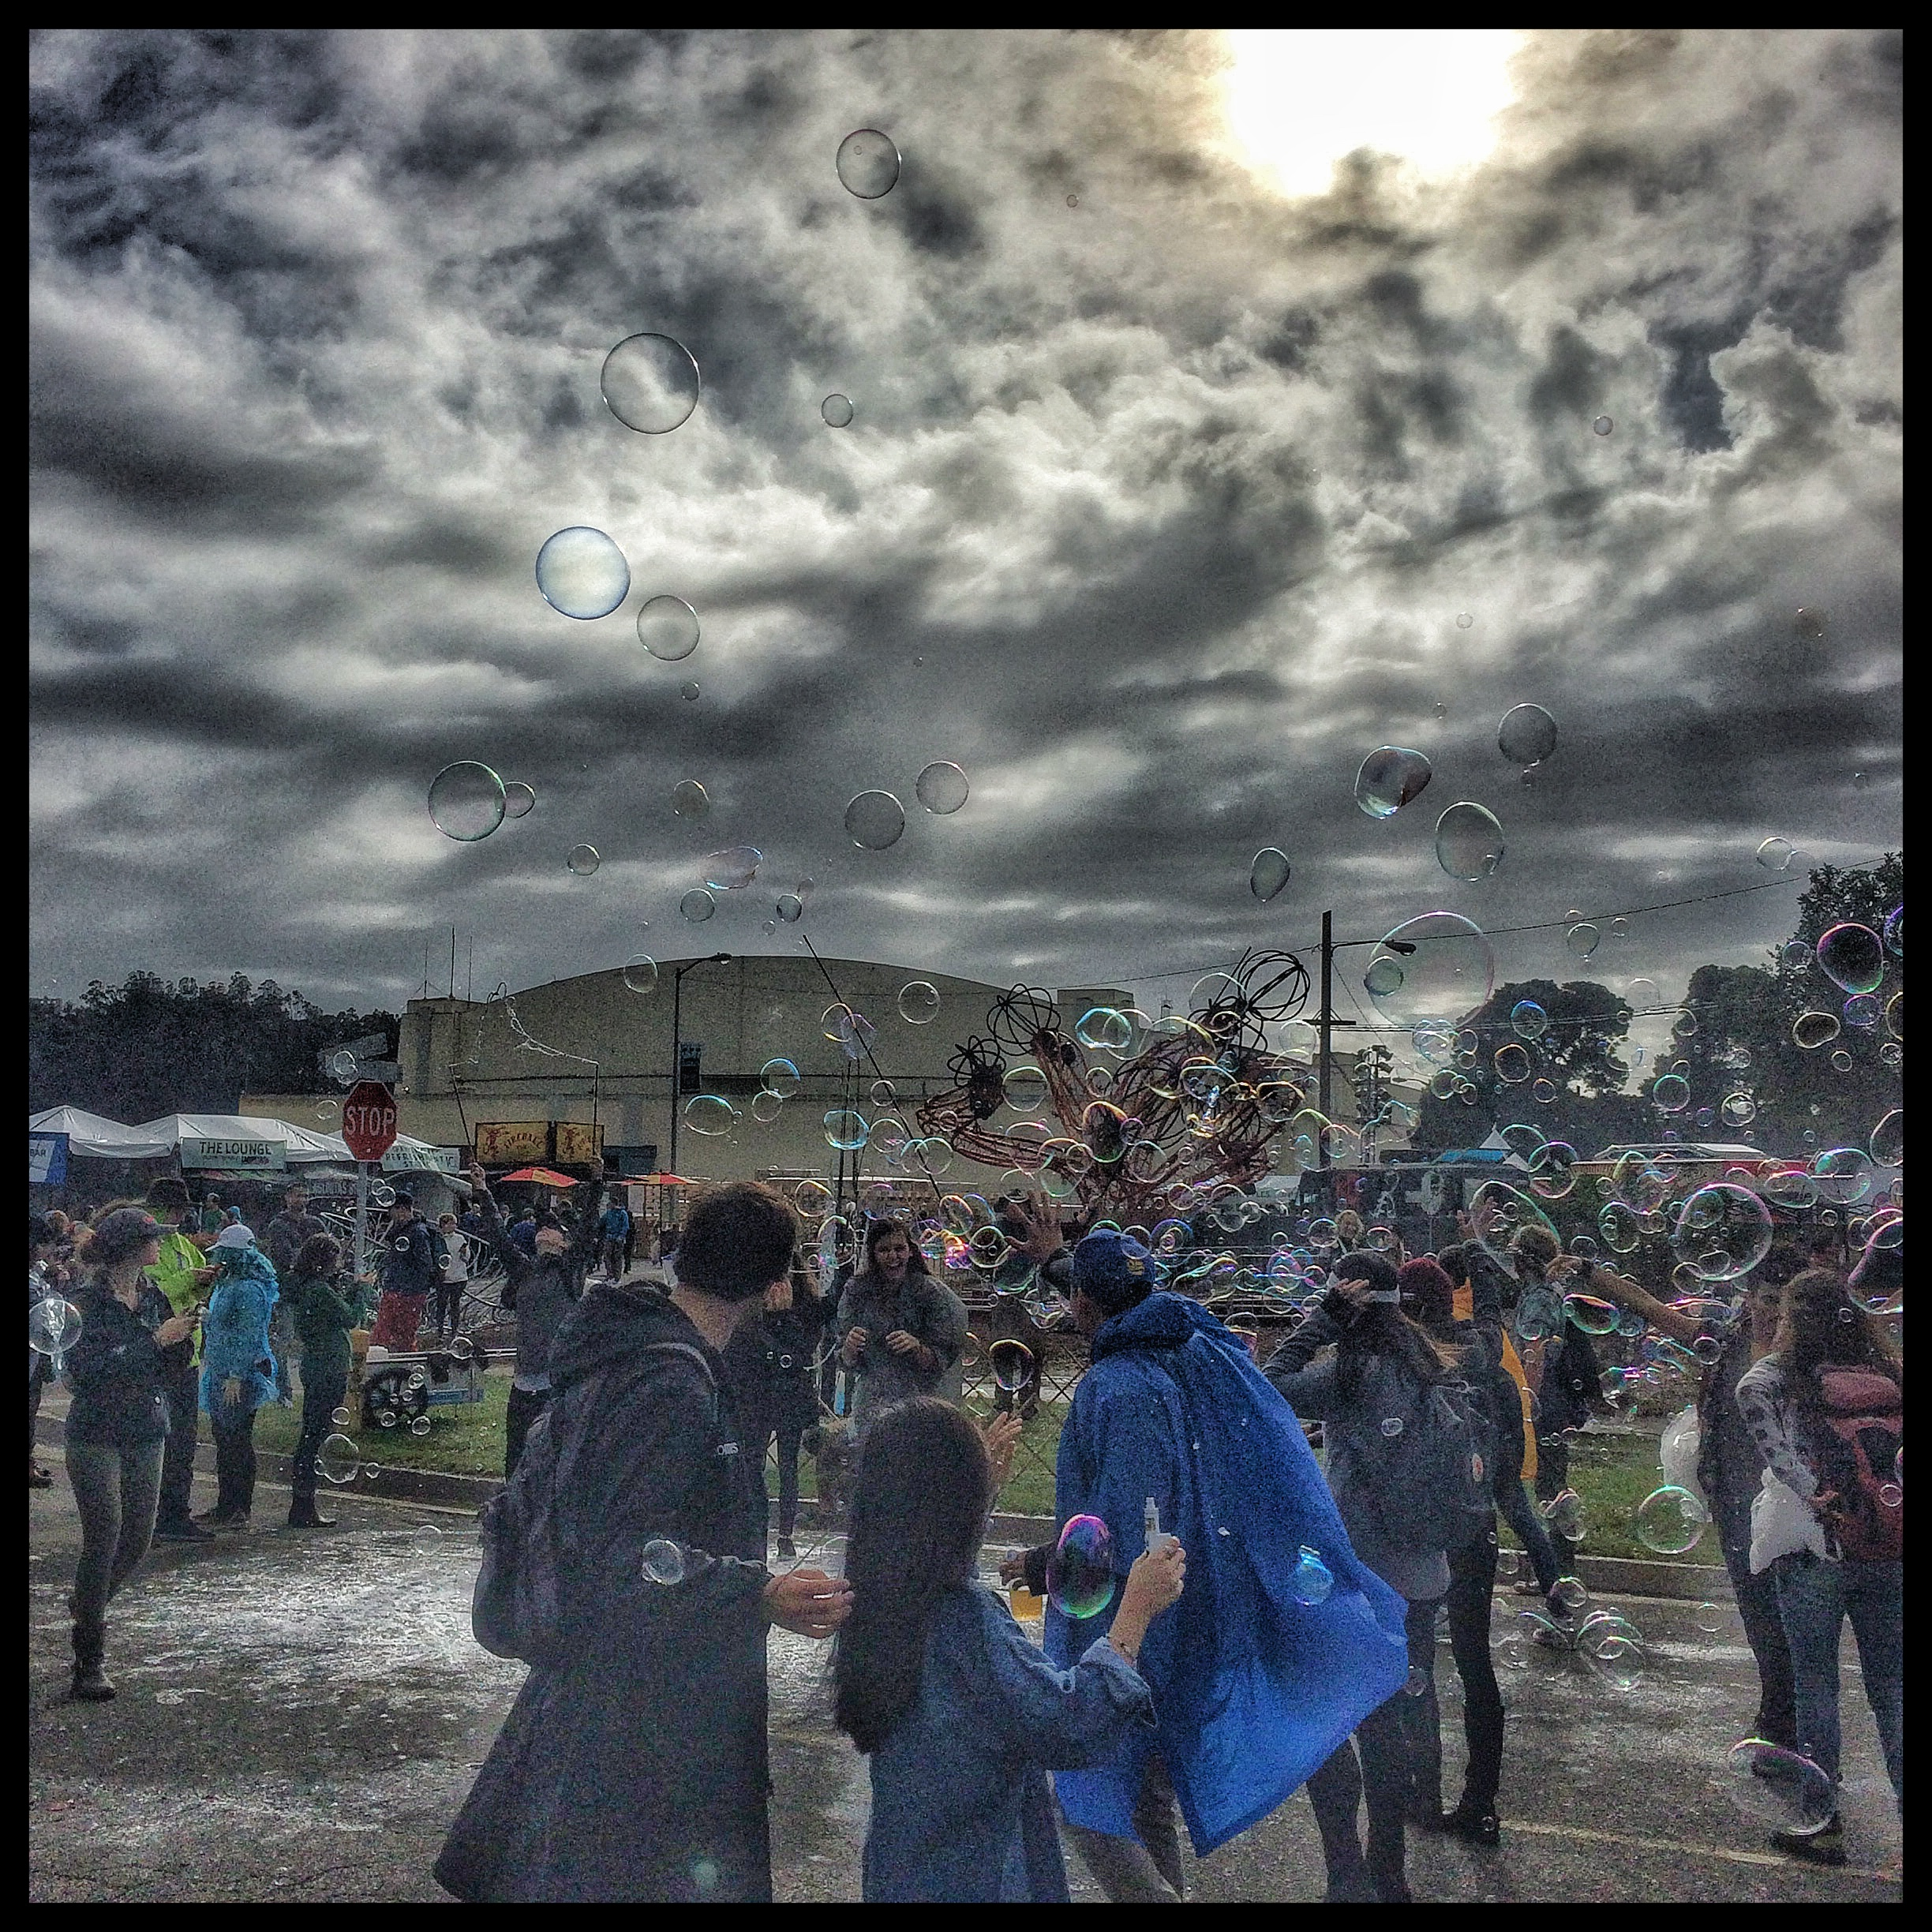 The Rain Clouds Make a Dramatic BackDrop for Bubbles